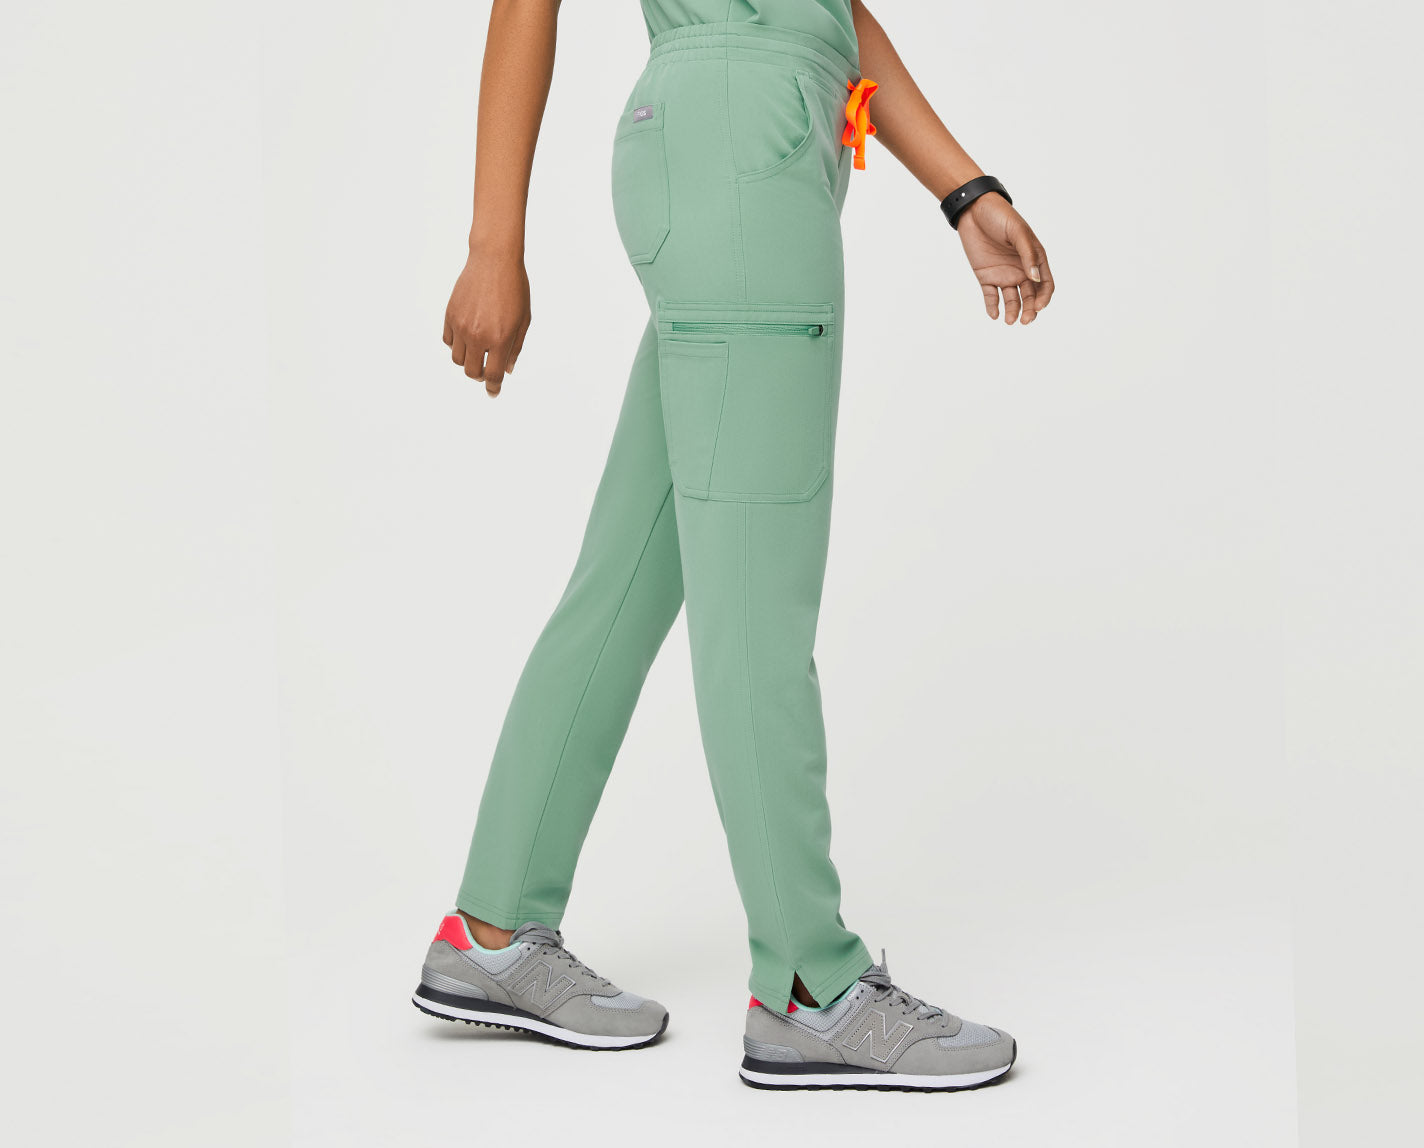 Straight leg. Slim fit. Eleven pockets. (Yes, you read that right.) Made with our proprietary FIONx fabric, The Yola adds a polished look to any scrub top with its side-slit ankles, half elastic waistband and multi-tasking pockets.